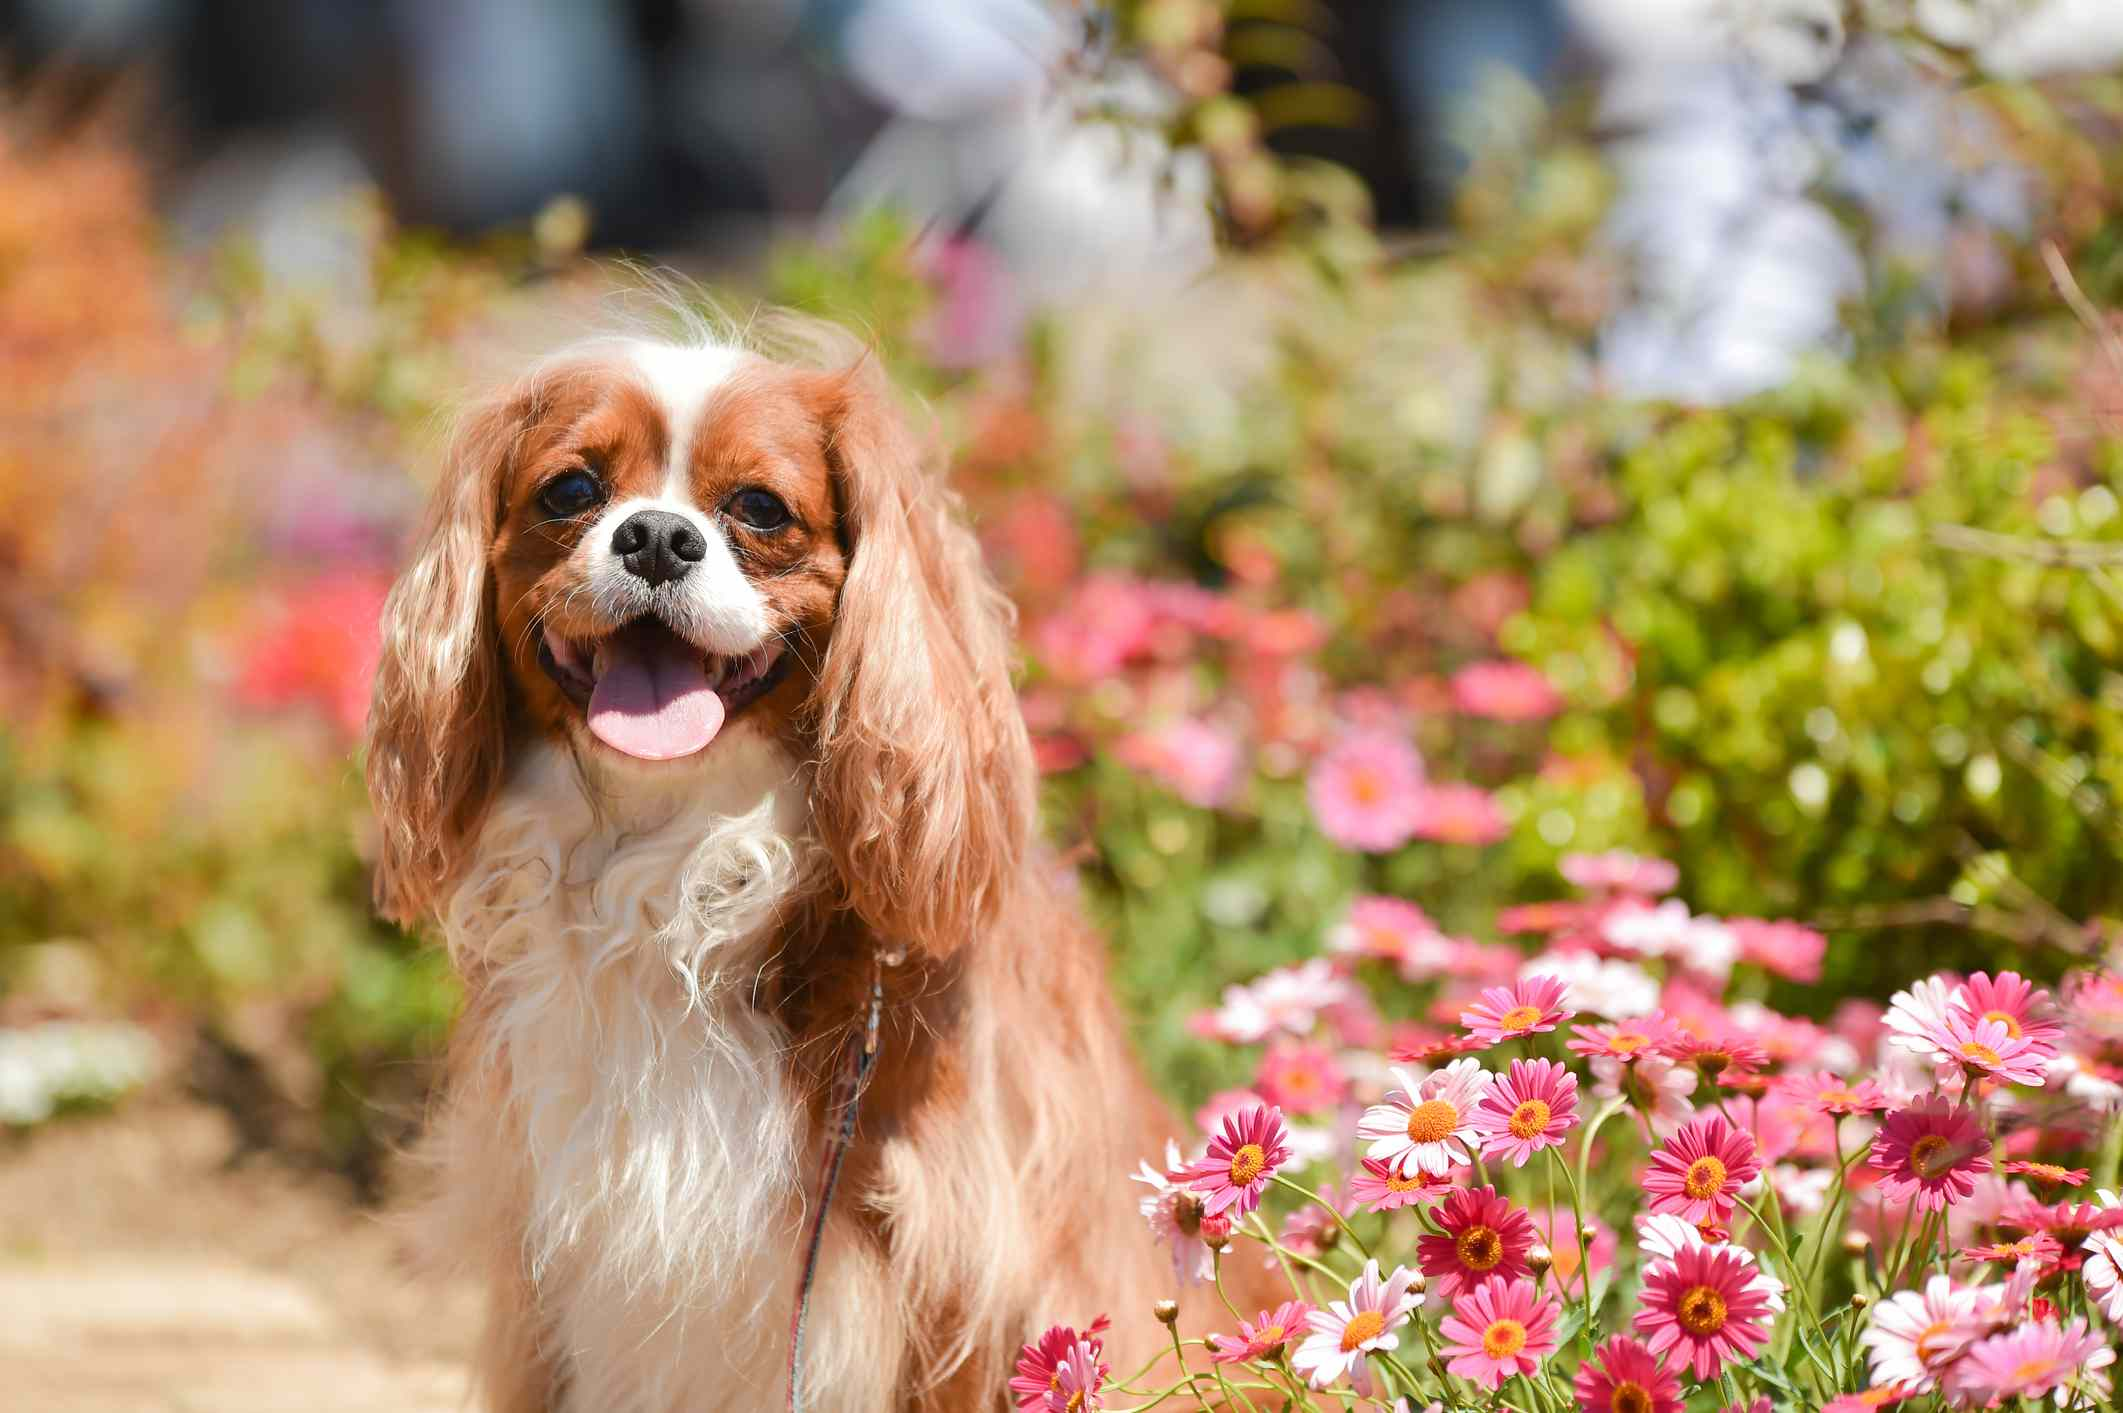 A small Cavalier King Charles Spaniel standing in the flower garden.